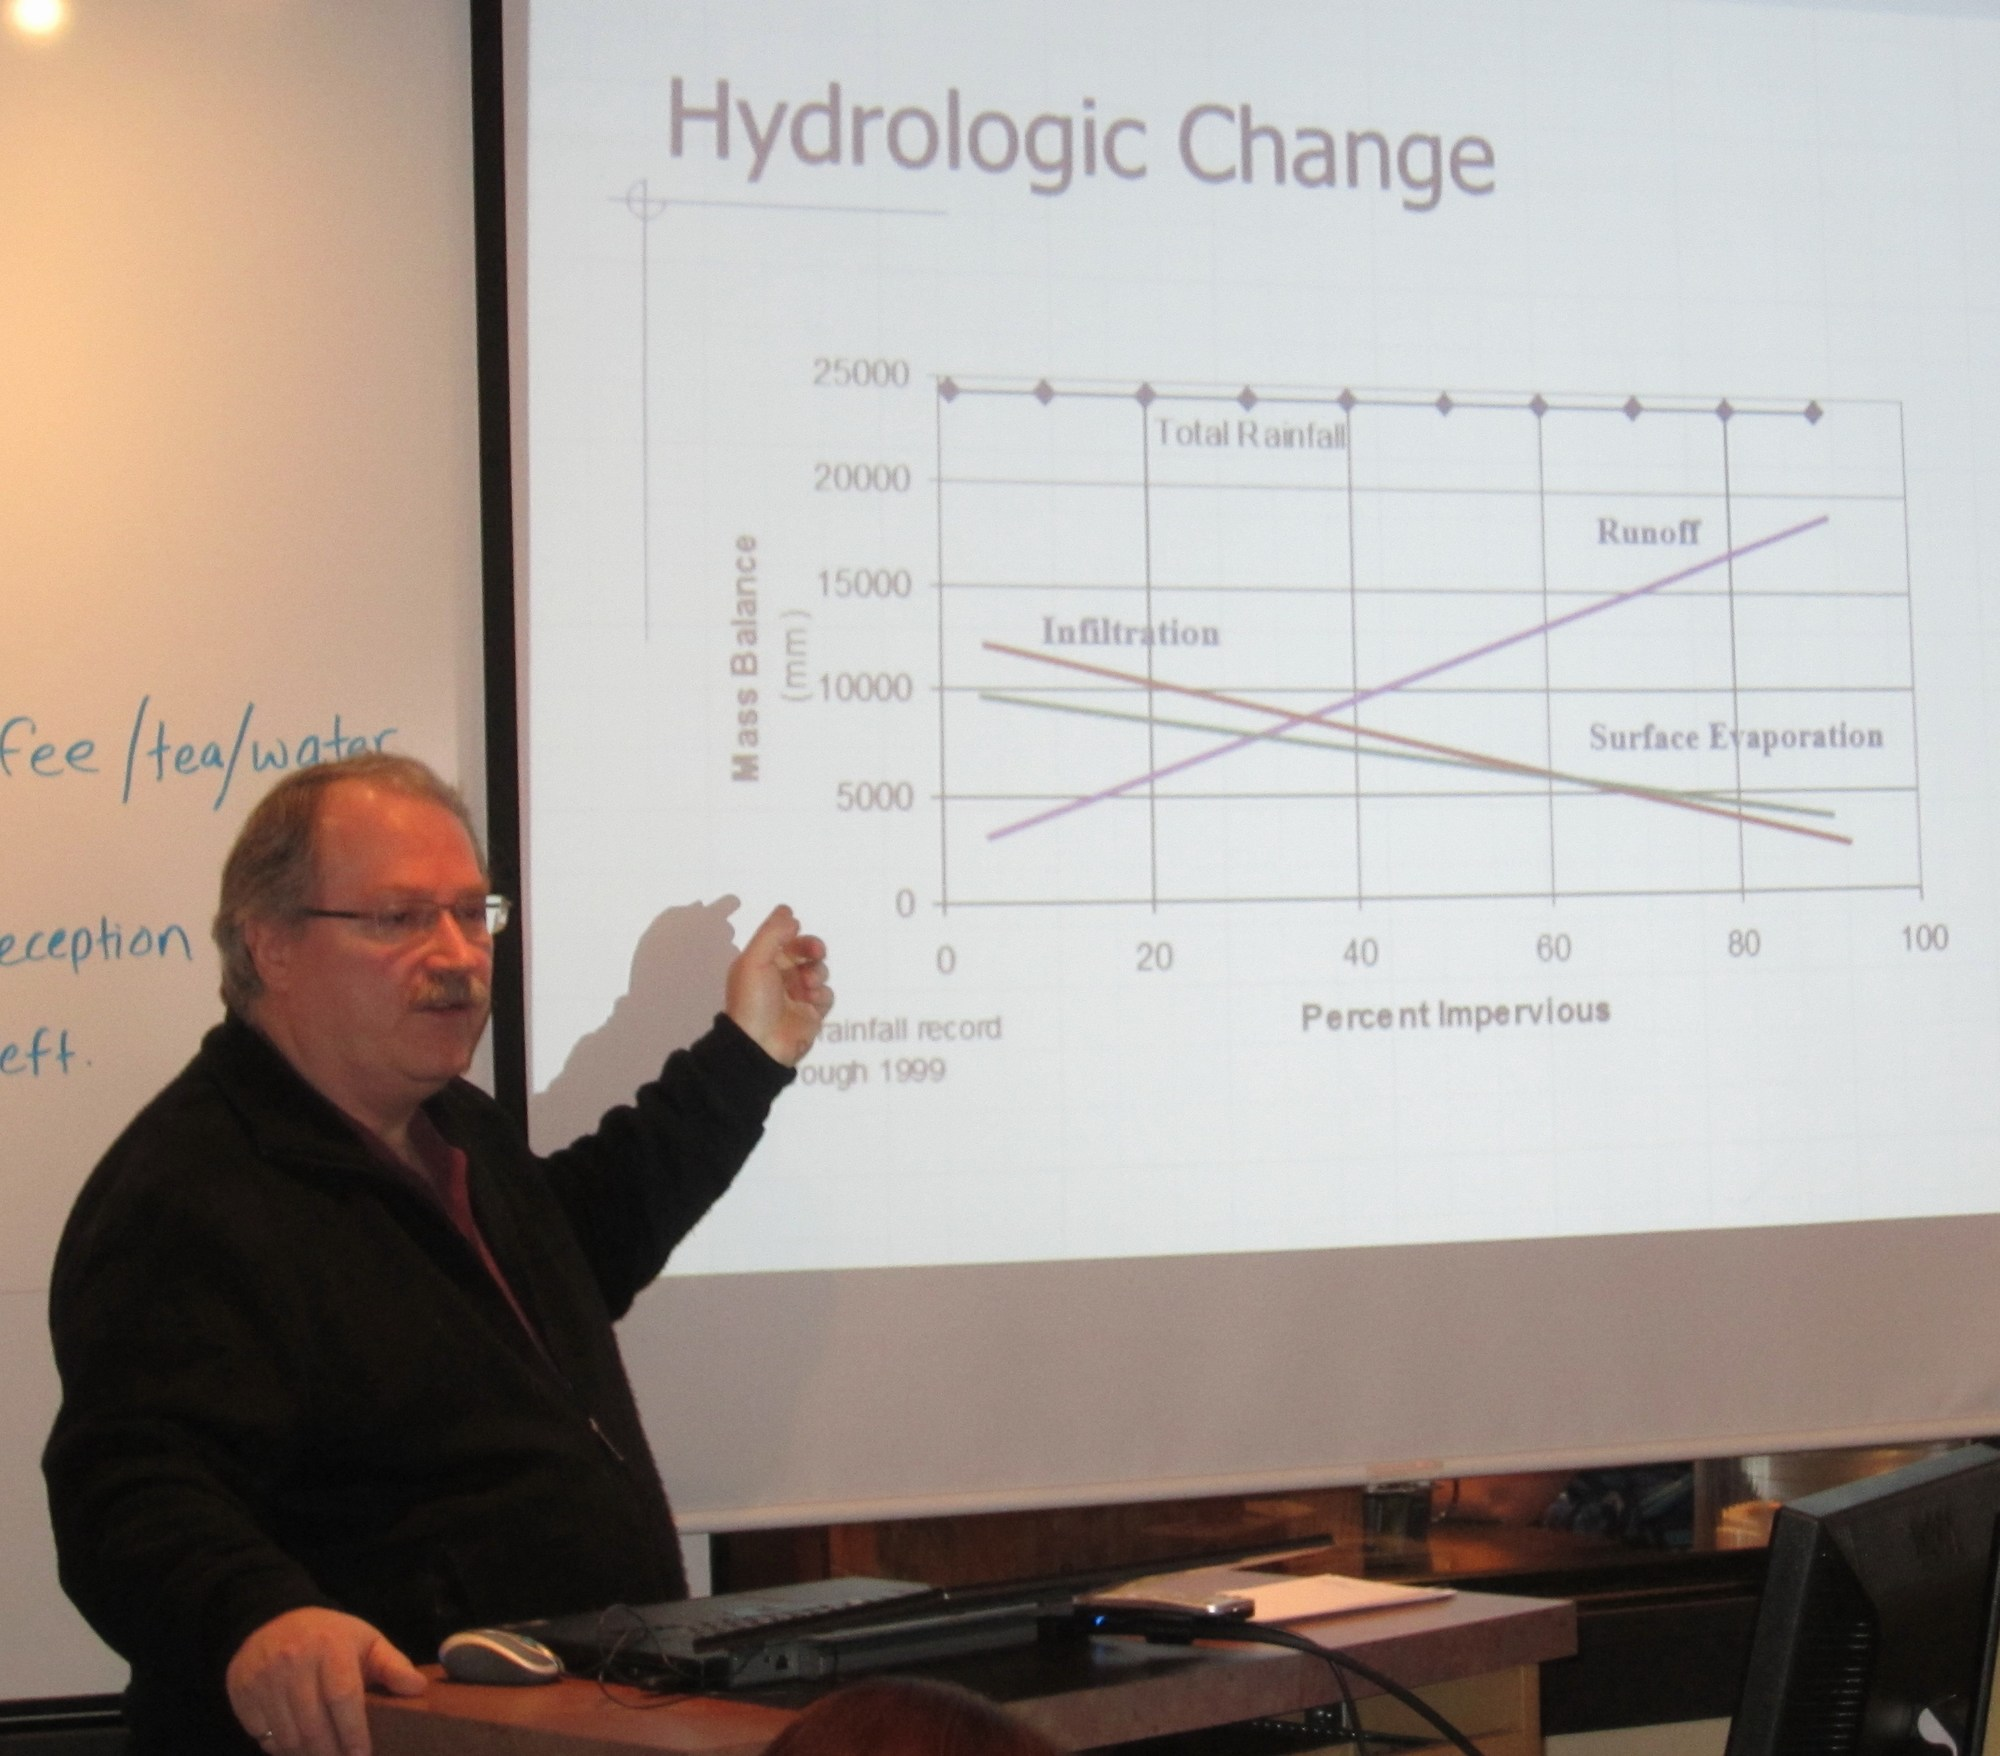 March 2012 – Jim Dumont teaches hydrology fundamentals at a training workshop hosted by the Okanagan Basin Water Board in Kelowna